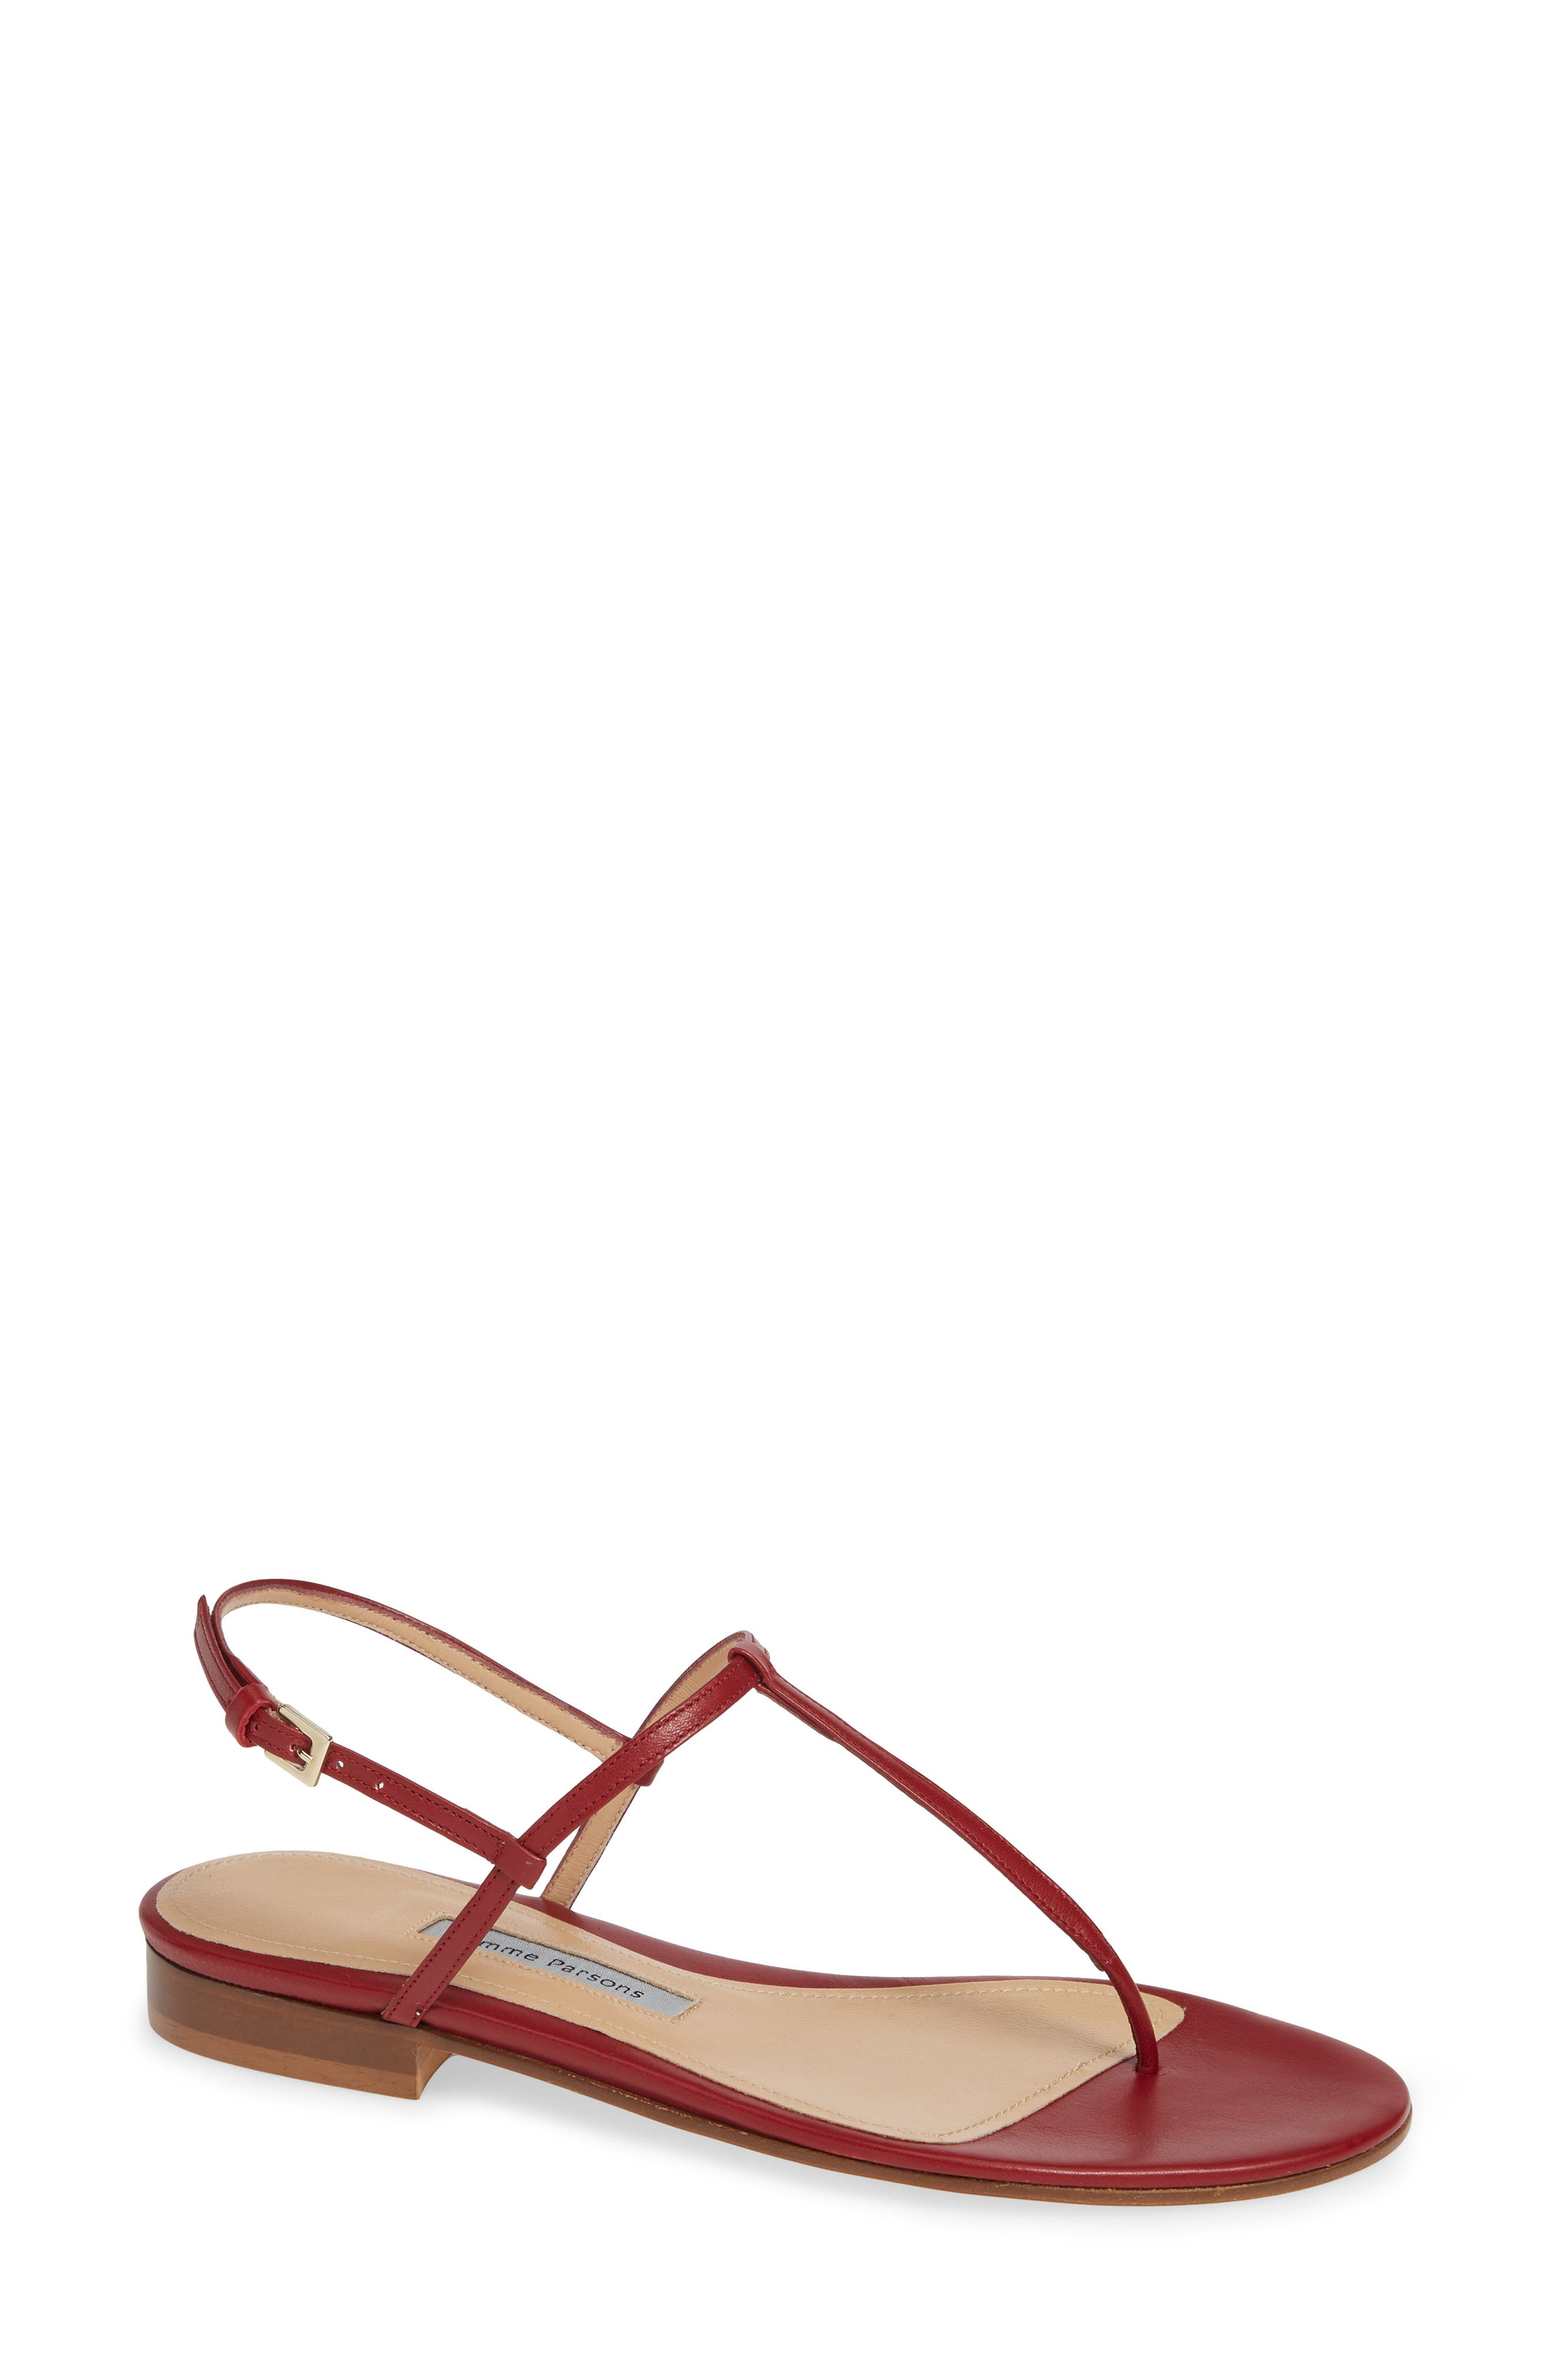 Emme Parsons Cecilia T-Strap Flat Sandal, Red